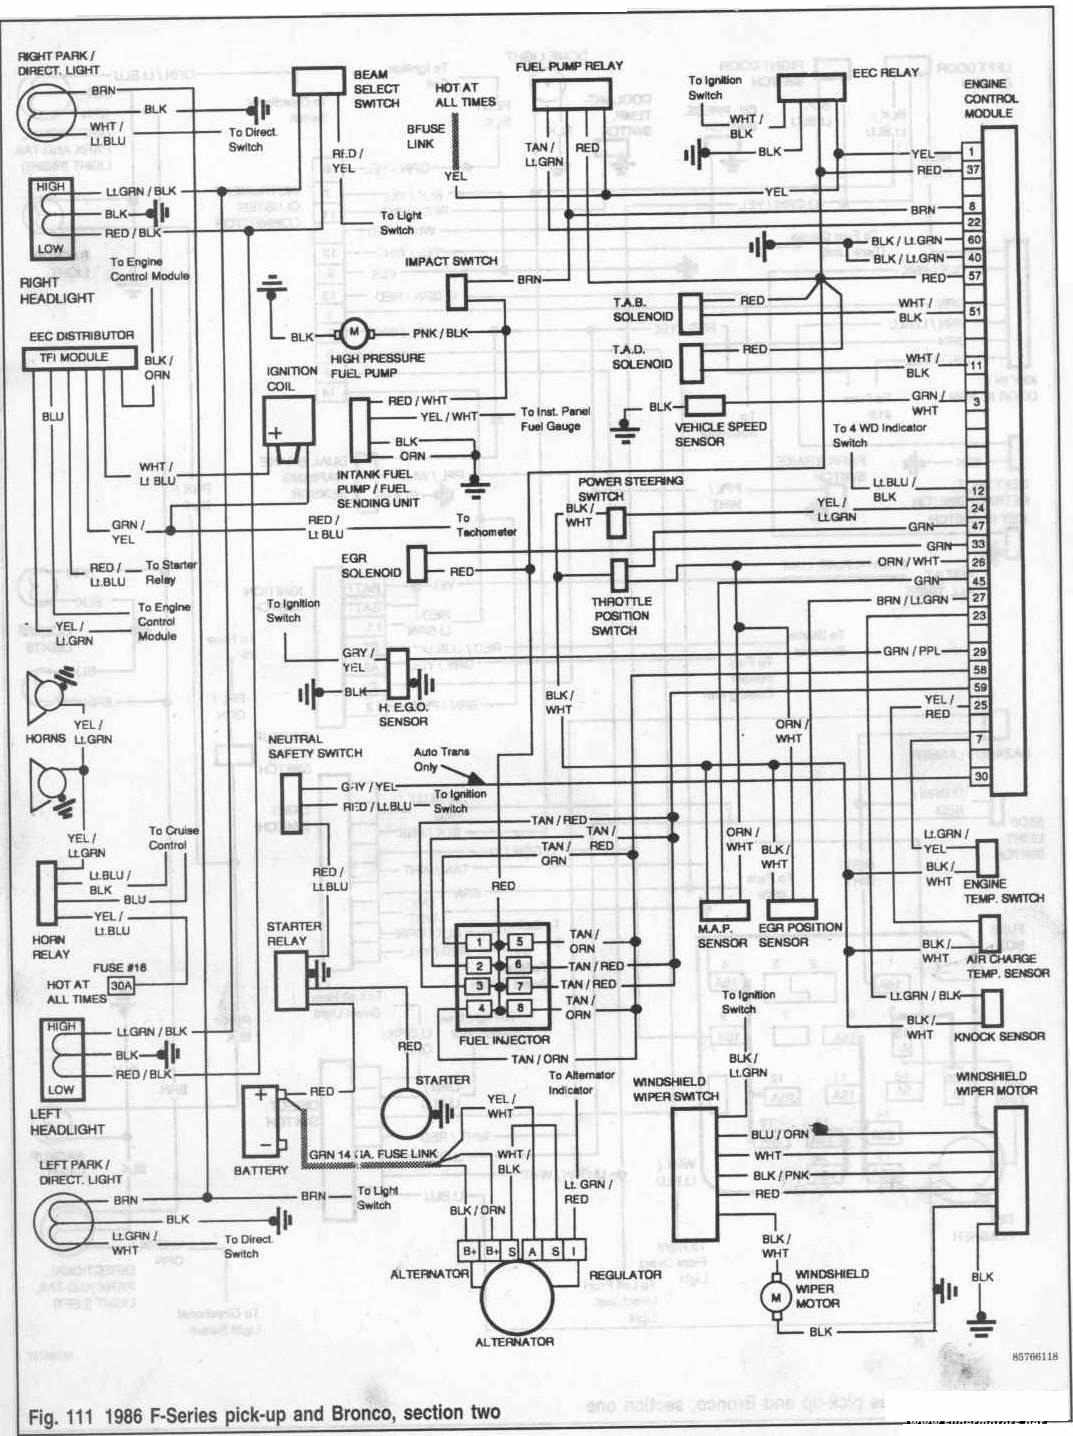 1986 Ford Thunderbird Wiring Diagram Wiring Diagram Frankmotors Es